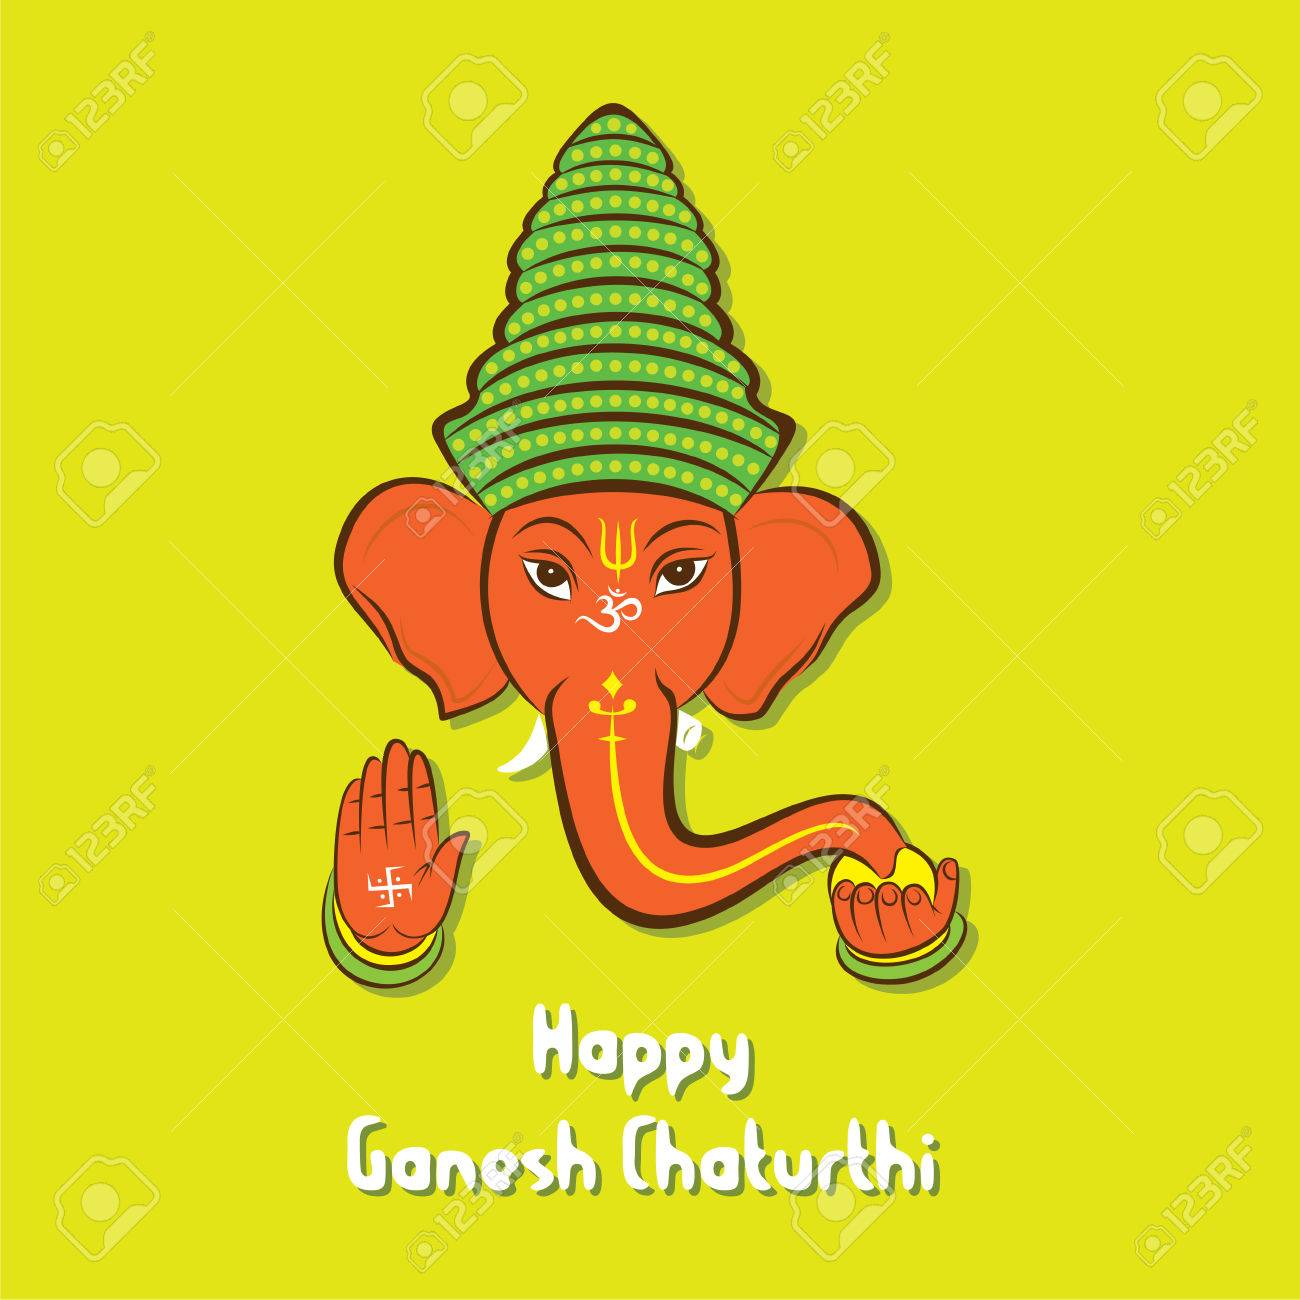 Happy ganesh chaturthi festival greeting card or poster design happy ganesh chaturthi festival greeting card or poster design vector stock vector 60699685 m4hsunfo